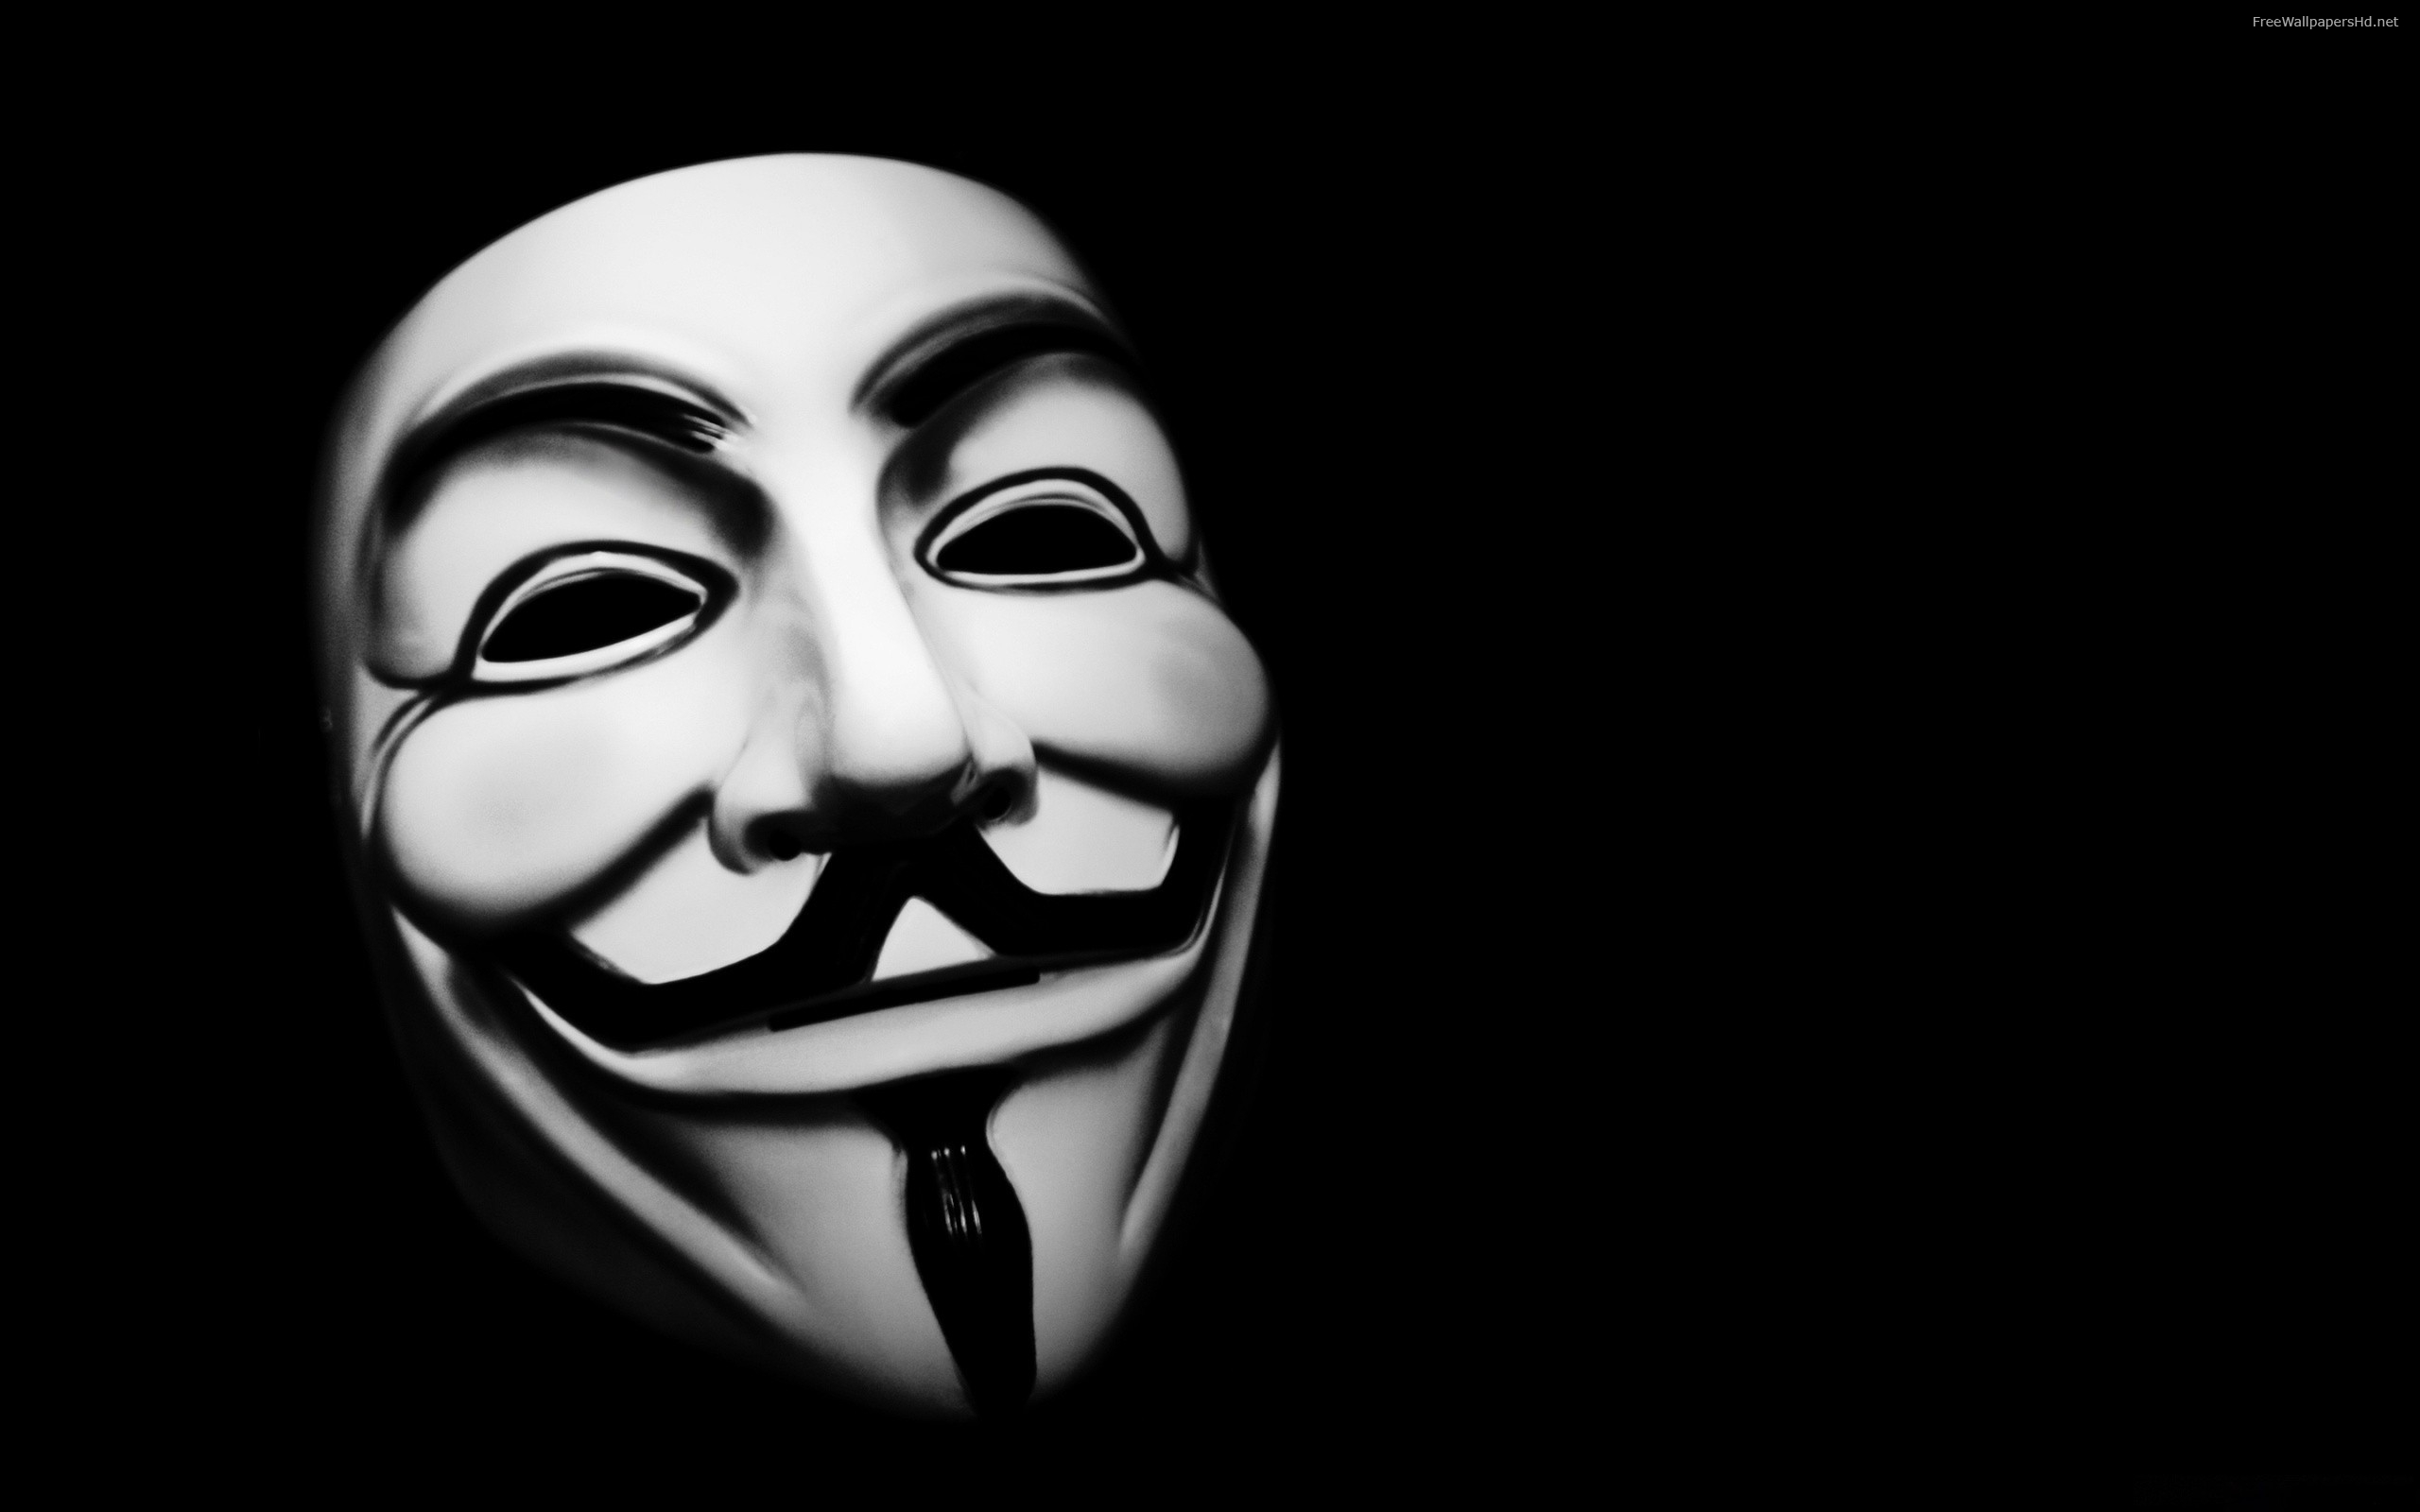 Anonymous Hd Wallpaper Full Pictures To Pin On Pinterest